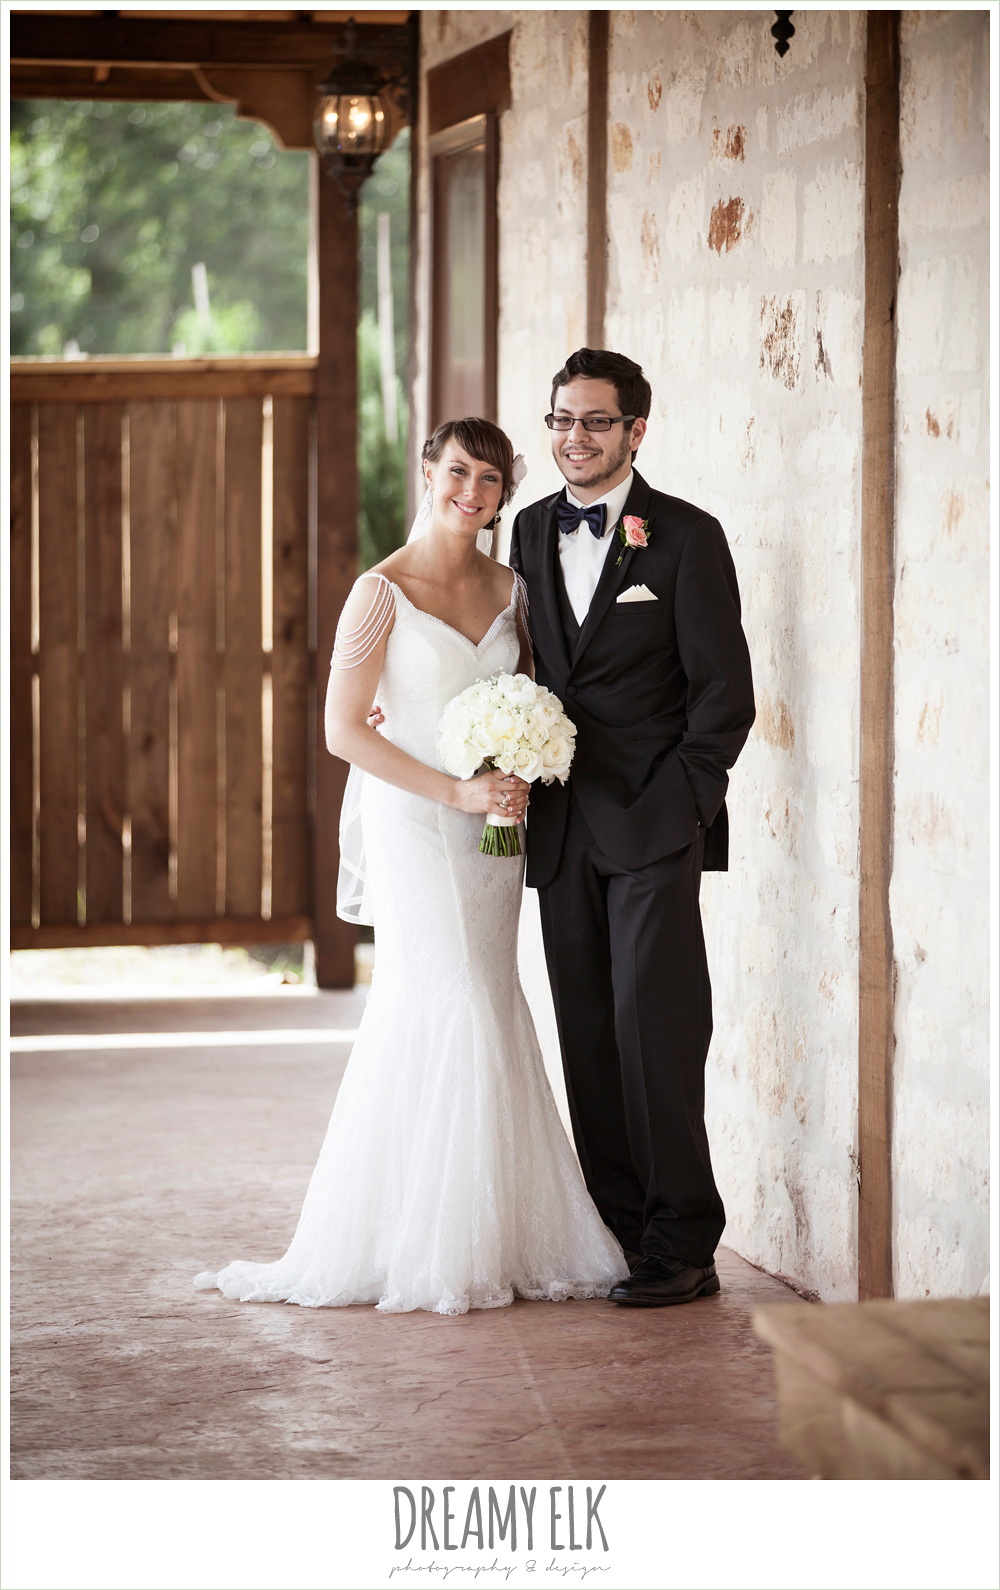 bride and groom portraits, outdoor bridal portrait on porch, pearl draped sleeve lace wedding dress, white wedding bouquet, pecan springs, houston, texas, photo {dreamy elk photography and design}